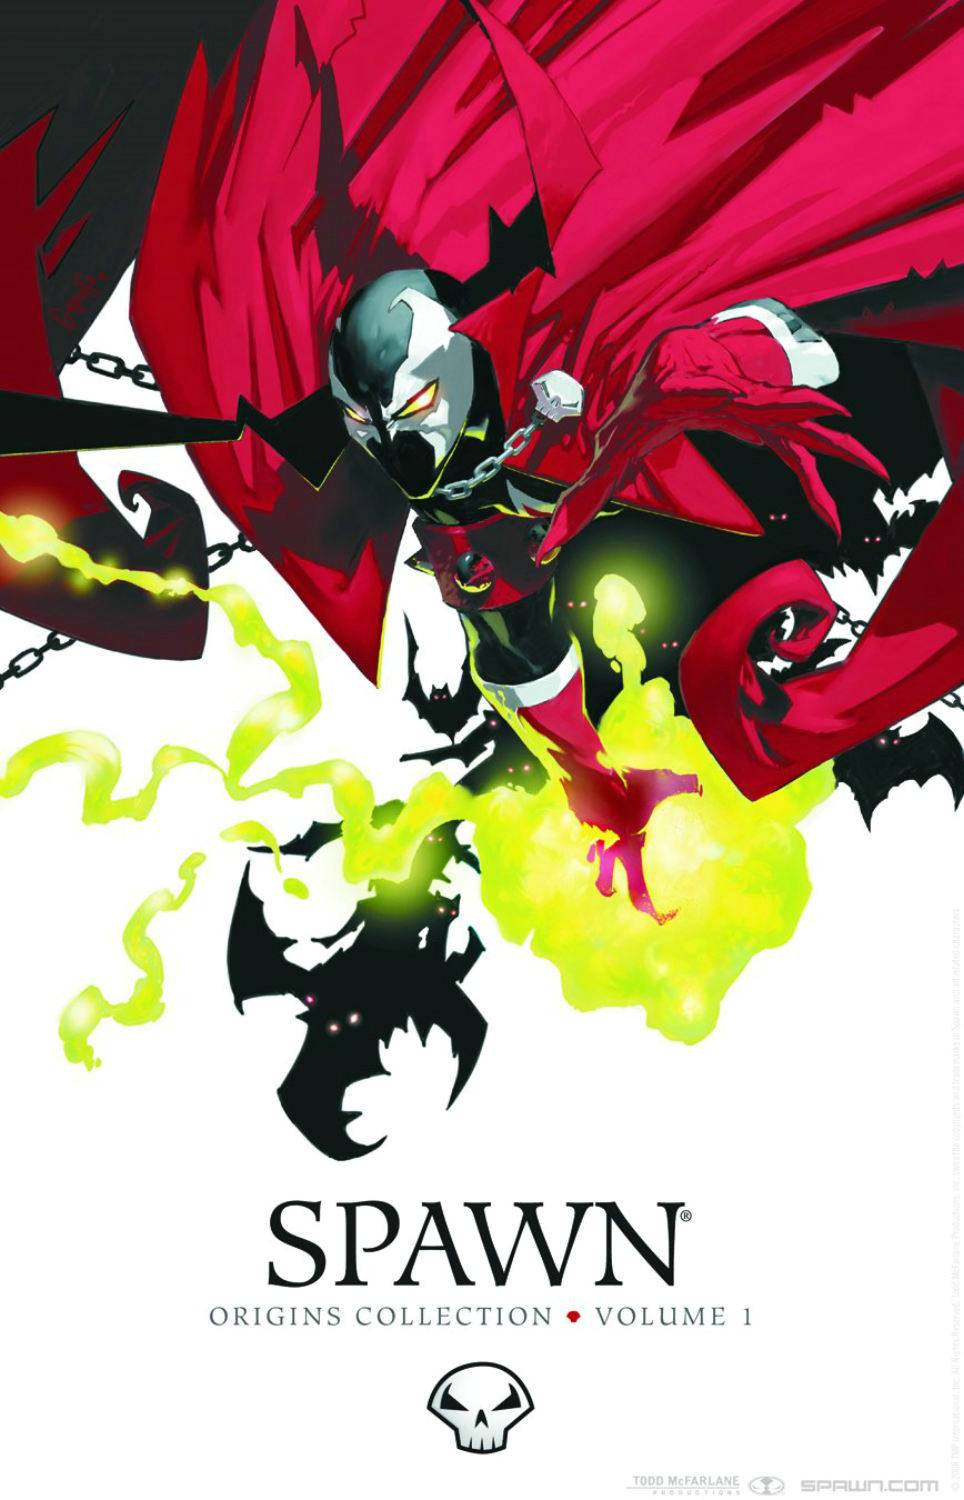 SPAWN ORIGINS TPB VOL 01 (NEW PTG) FOC 0/11 (ADVANCE ORDER)